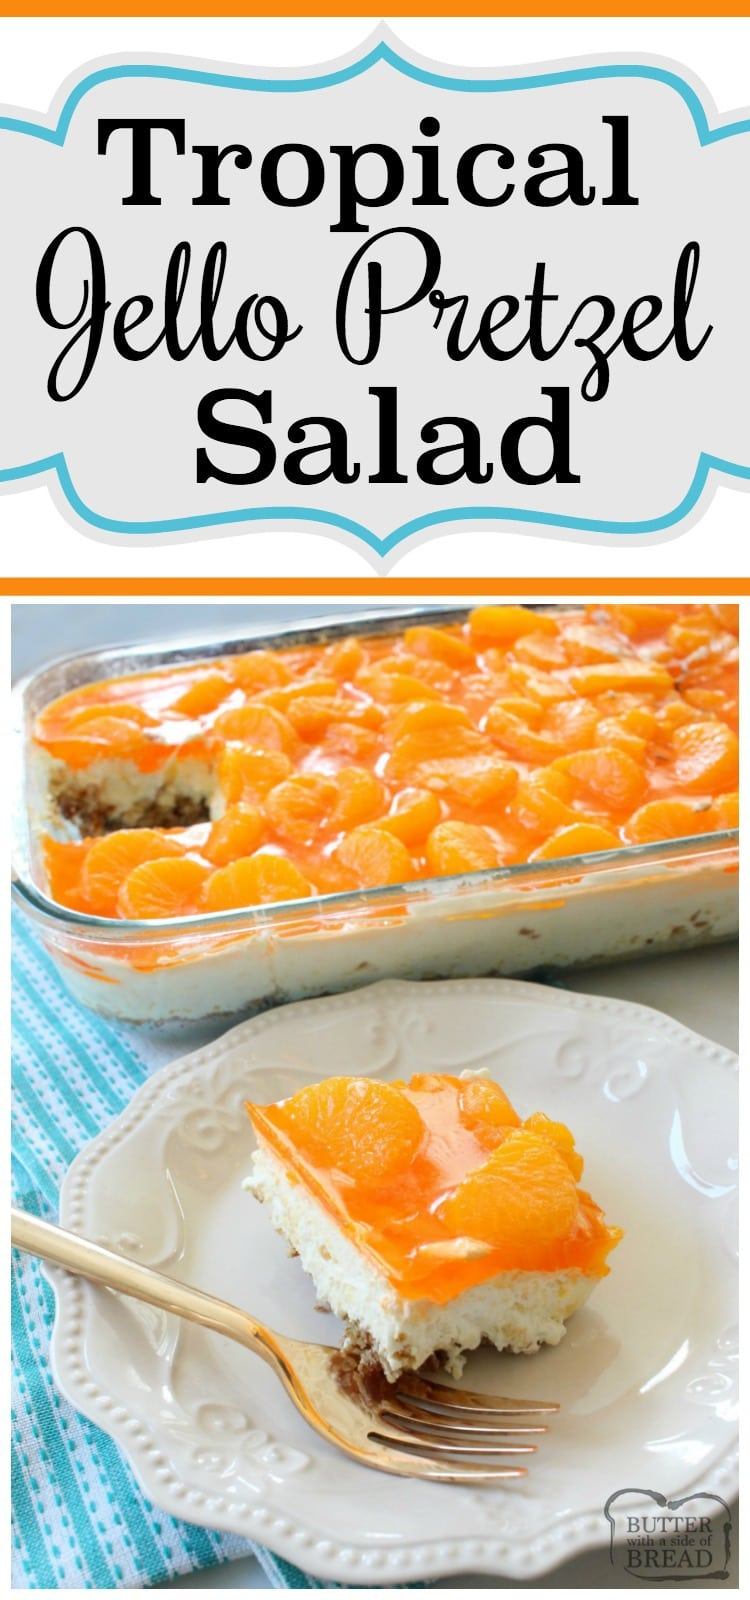 A traditional Jello Pretzel Salad with a fun twist- tropical flavors! The orange, pineapple and coconut combine to make this an insanely delicious salad. Easy to make sweet salad recipe from Butter With A Side of Bread